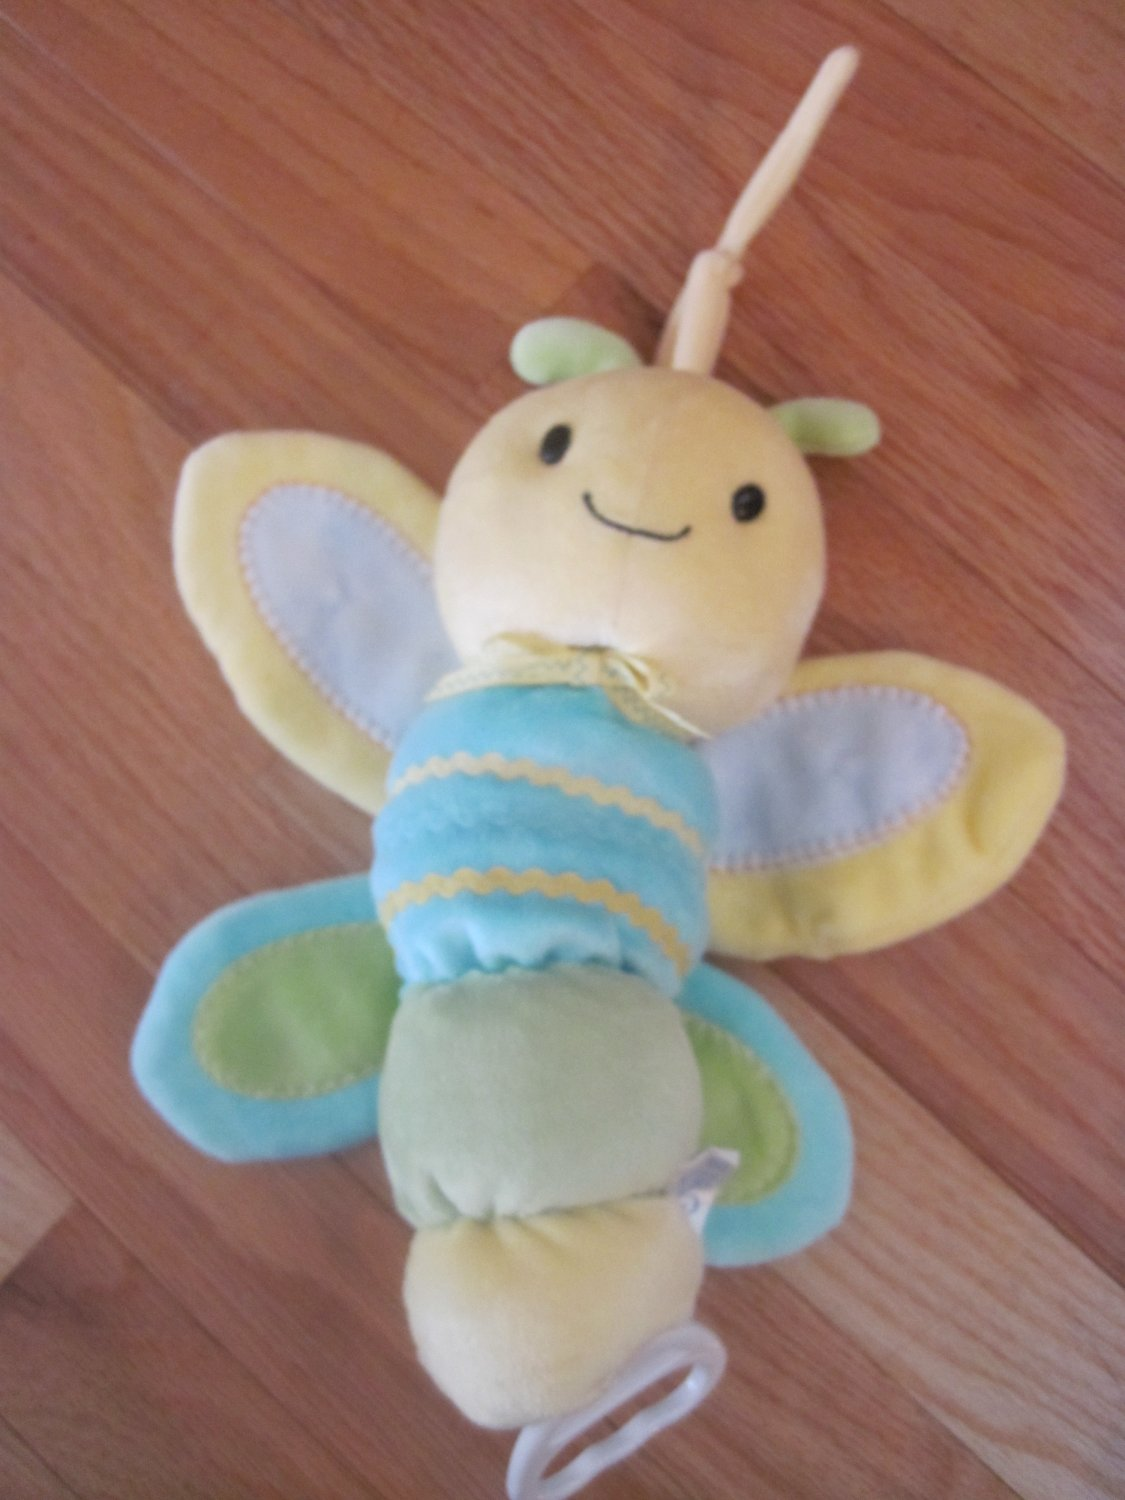 Carters Child of Mine Plush Musical Dragonfly Yellow Teal Green Rick Rack Accents